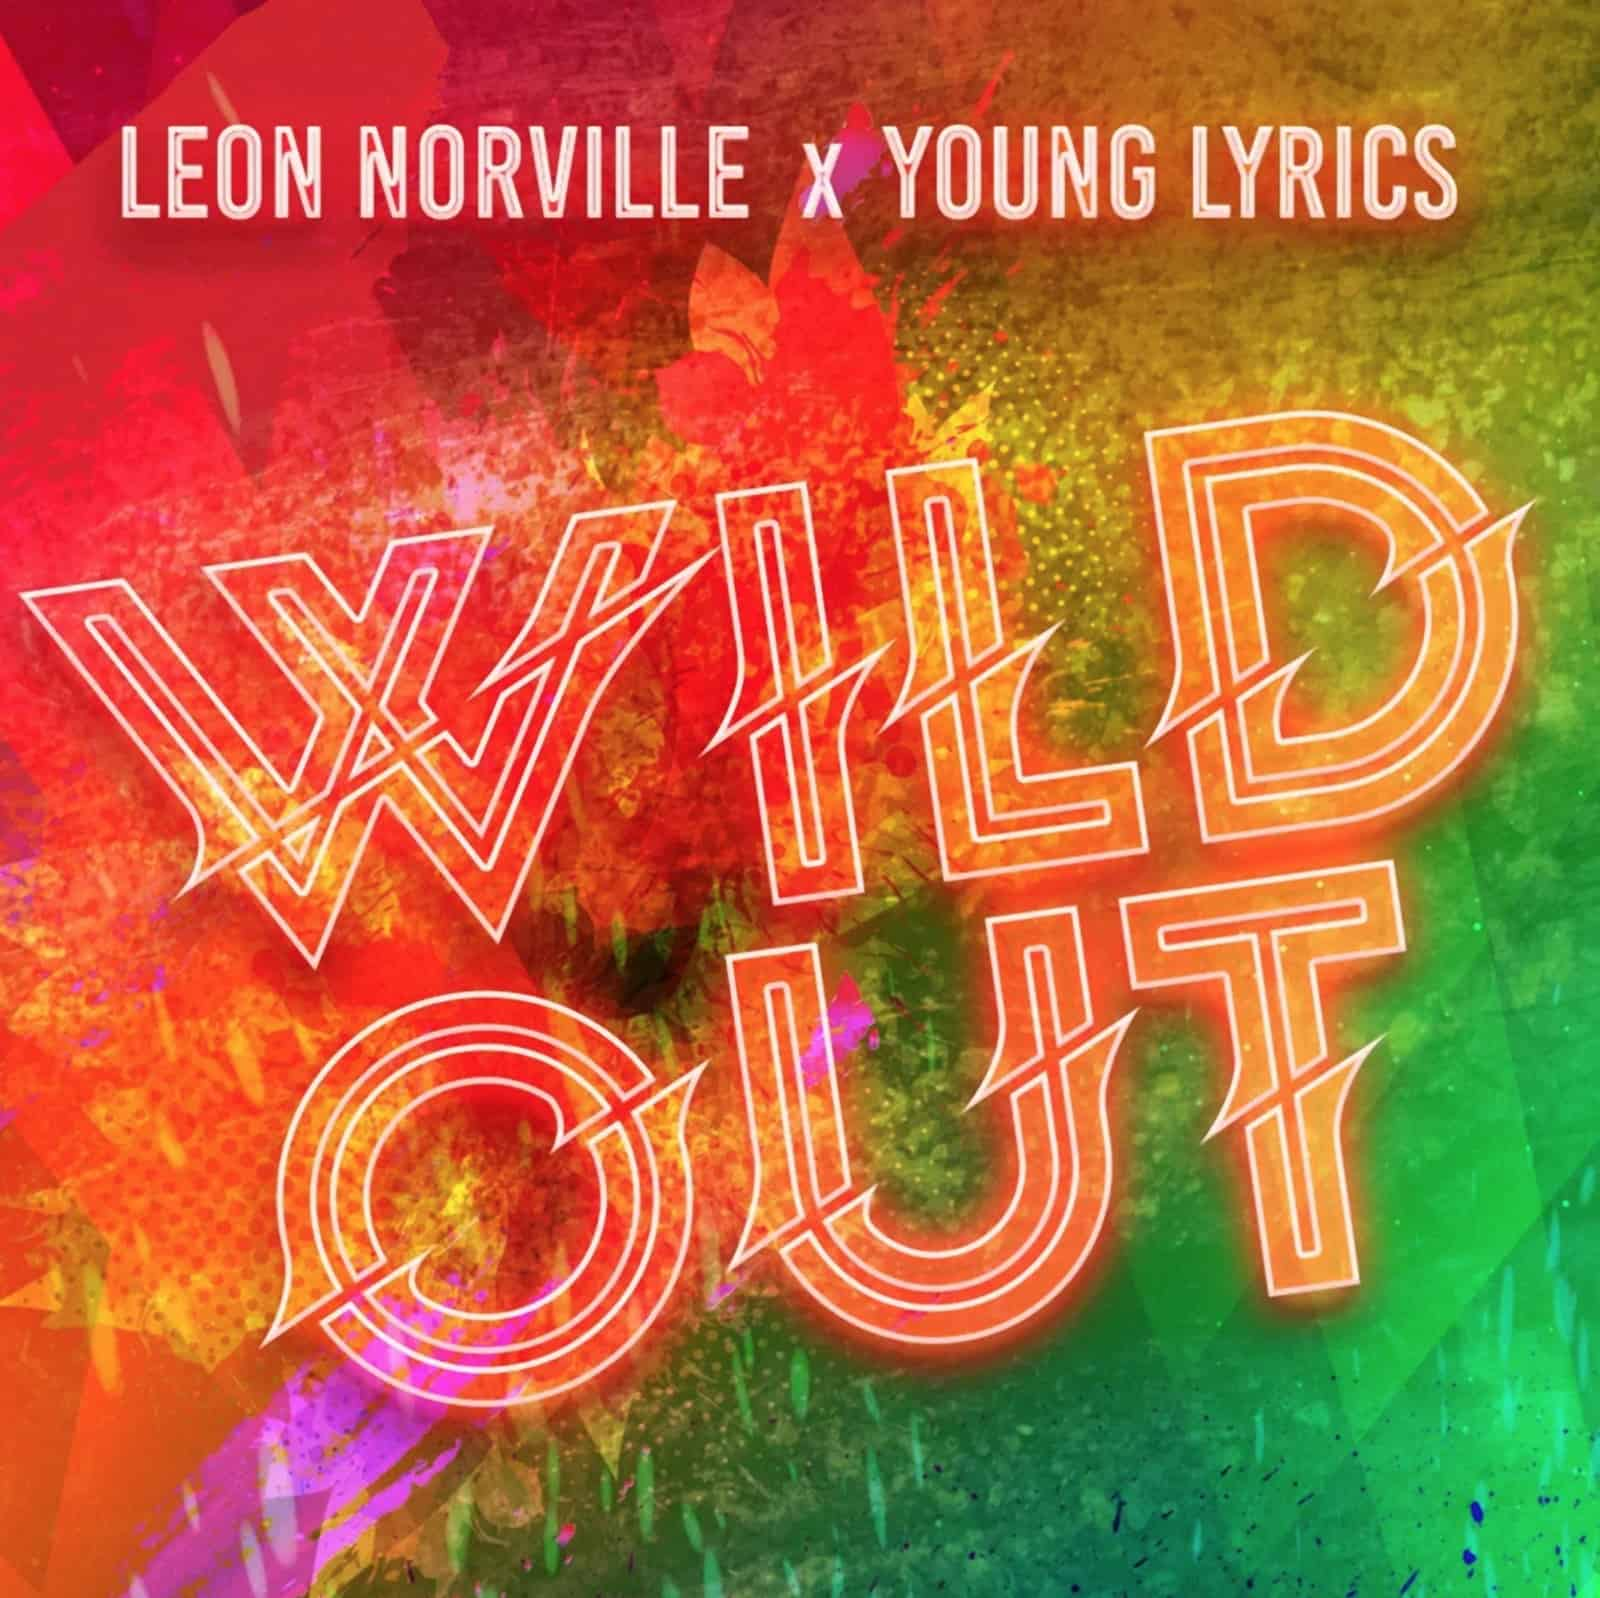 Leon Norville & Young Lyrics - Wild Out